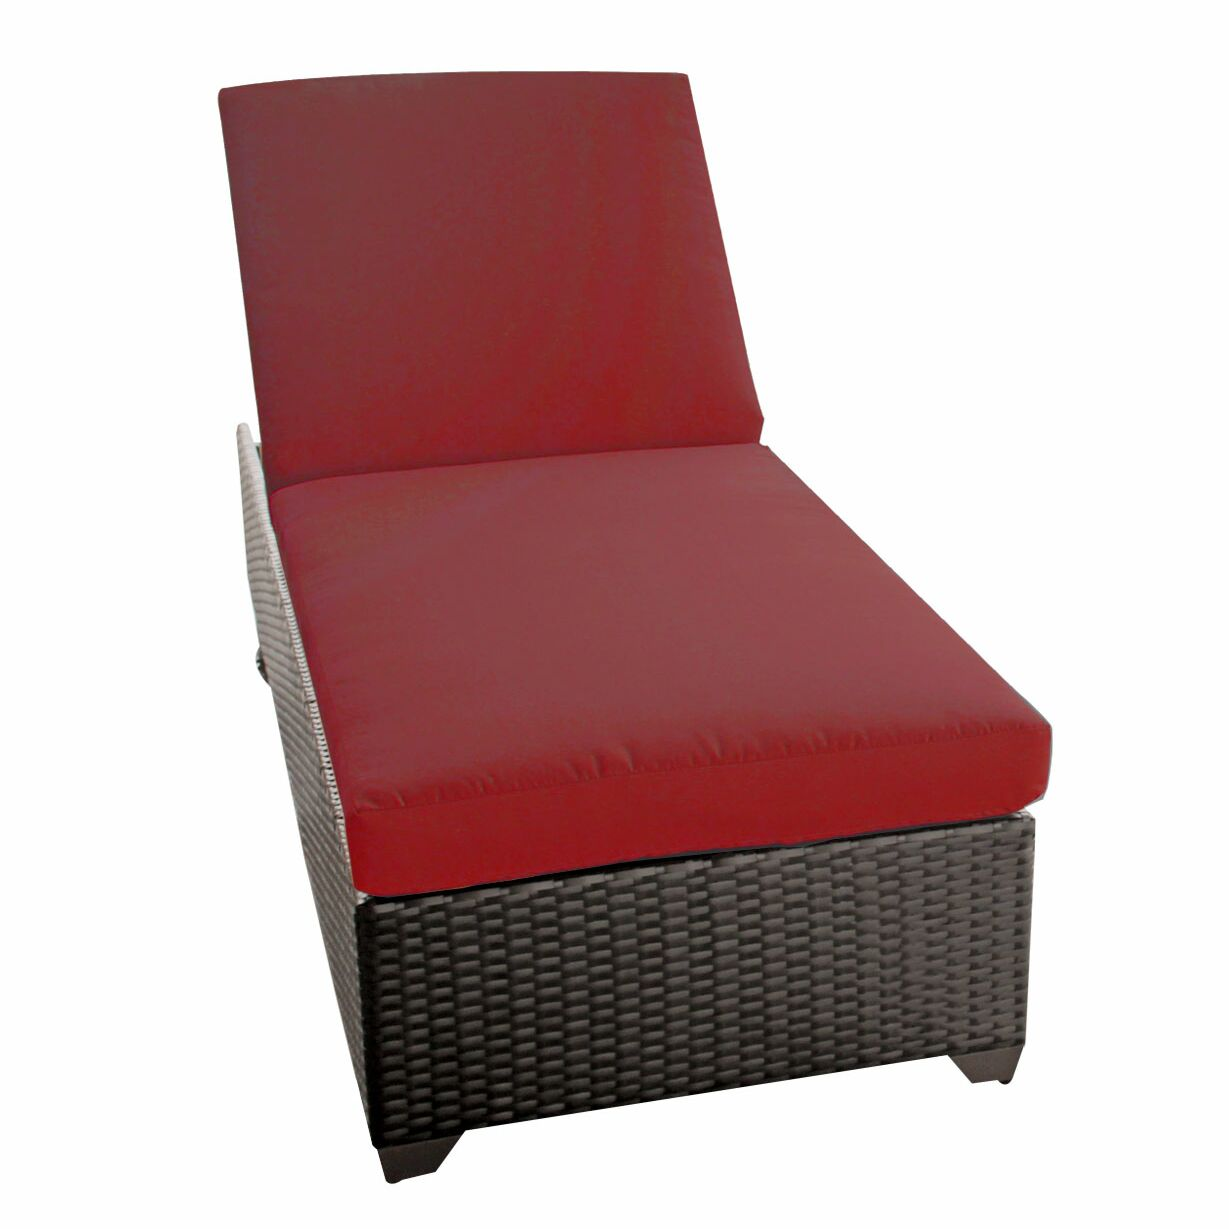 Classic Chaise Lounge with Cushions Color: Terracotta